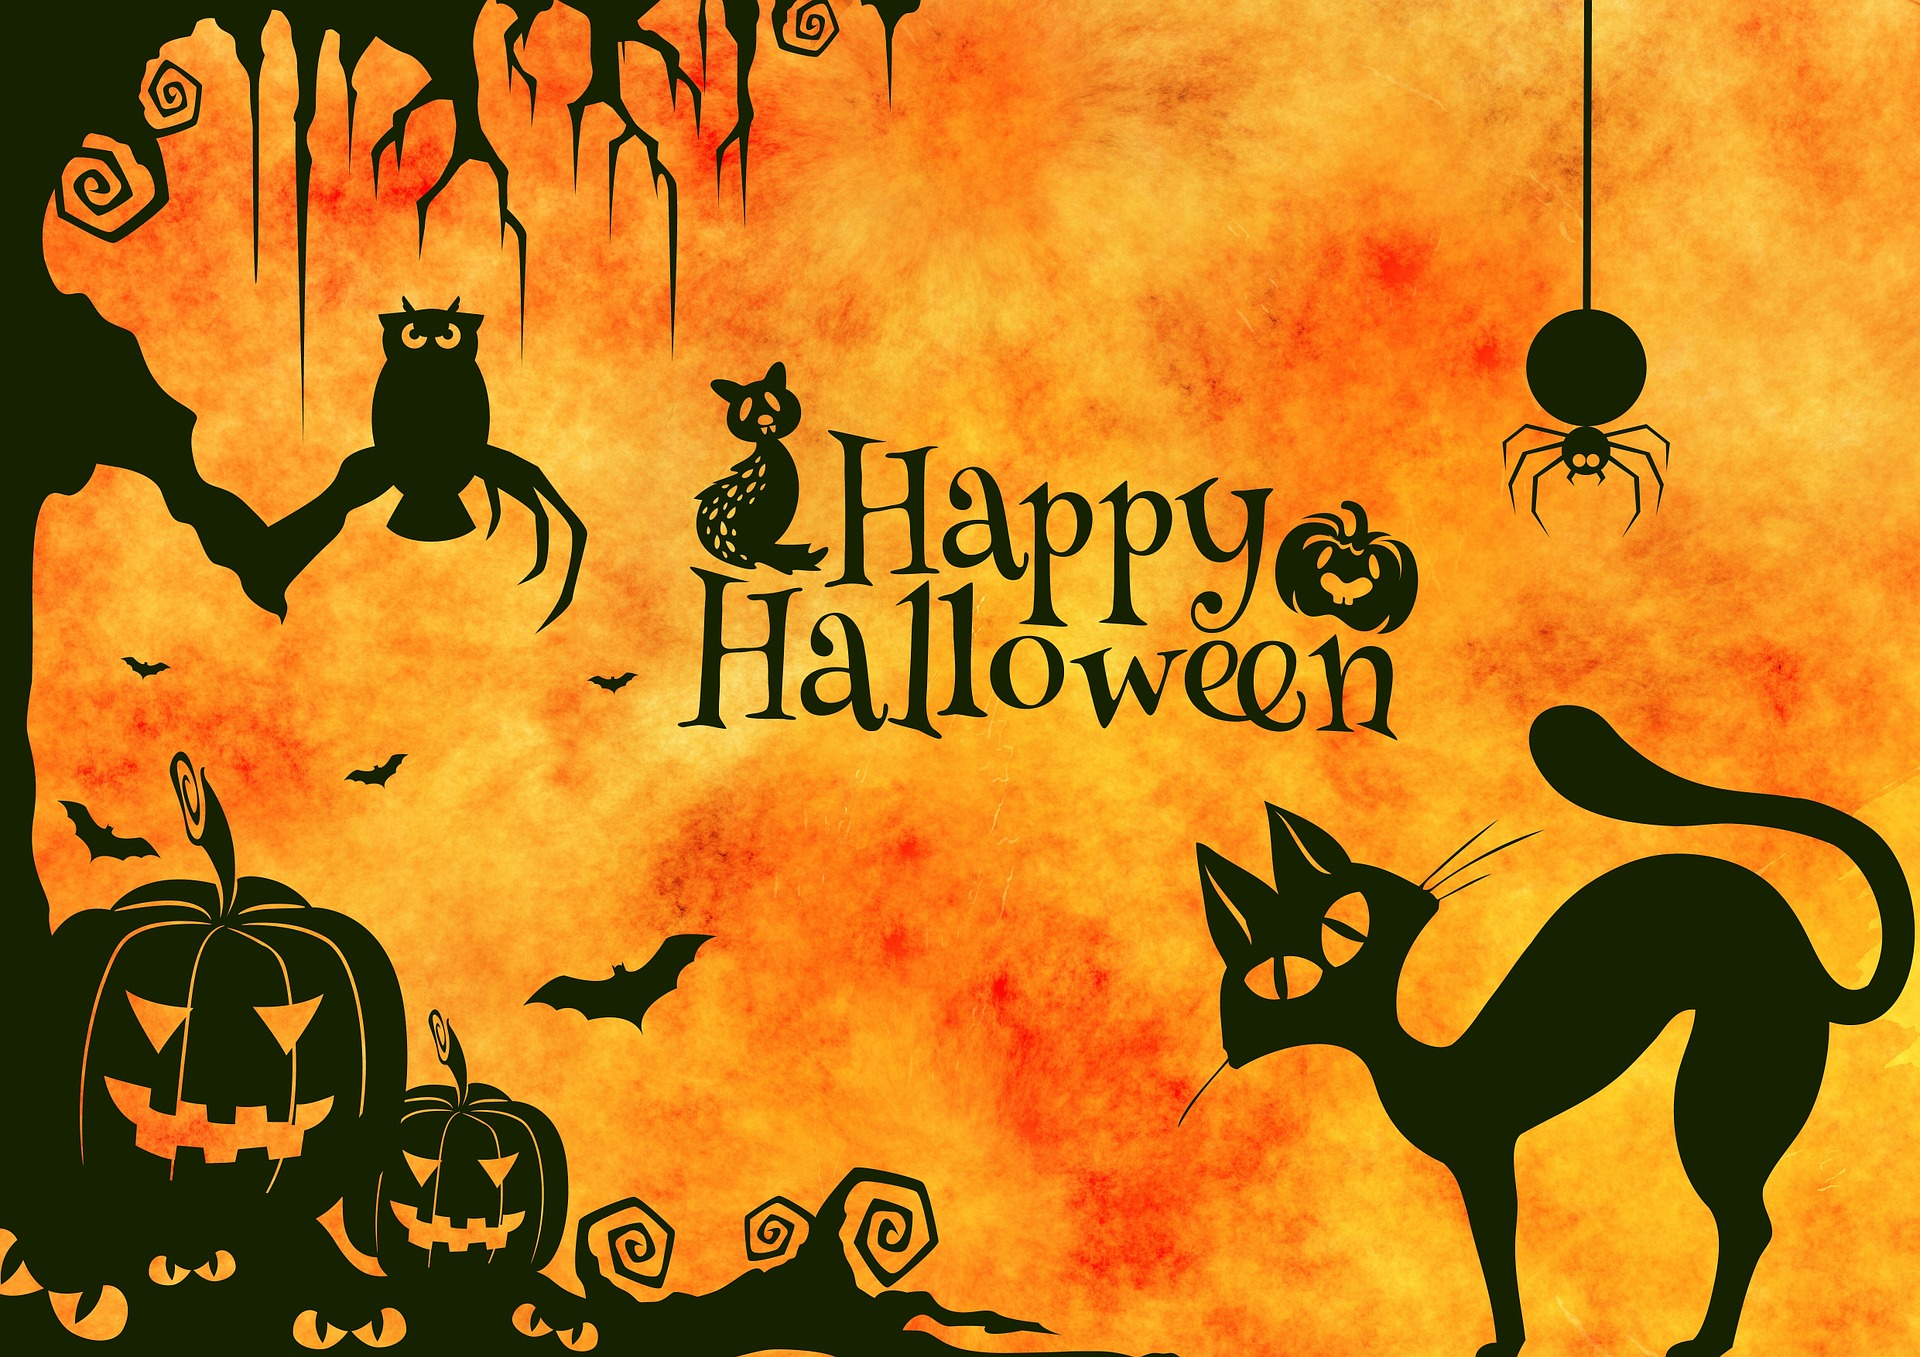 happy halloween quotes 2015 | investorplace